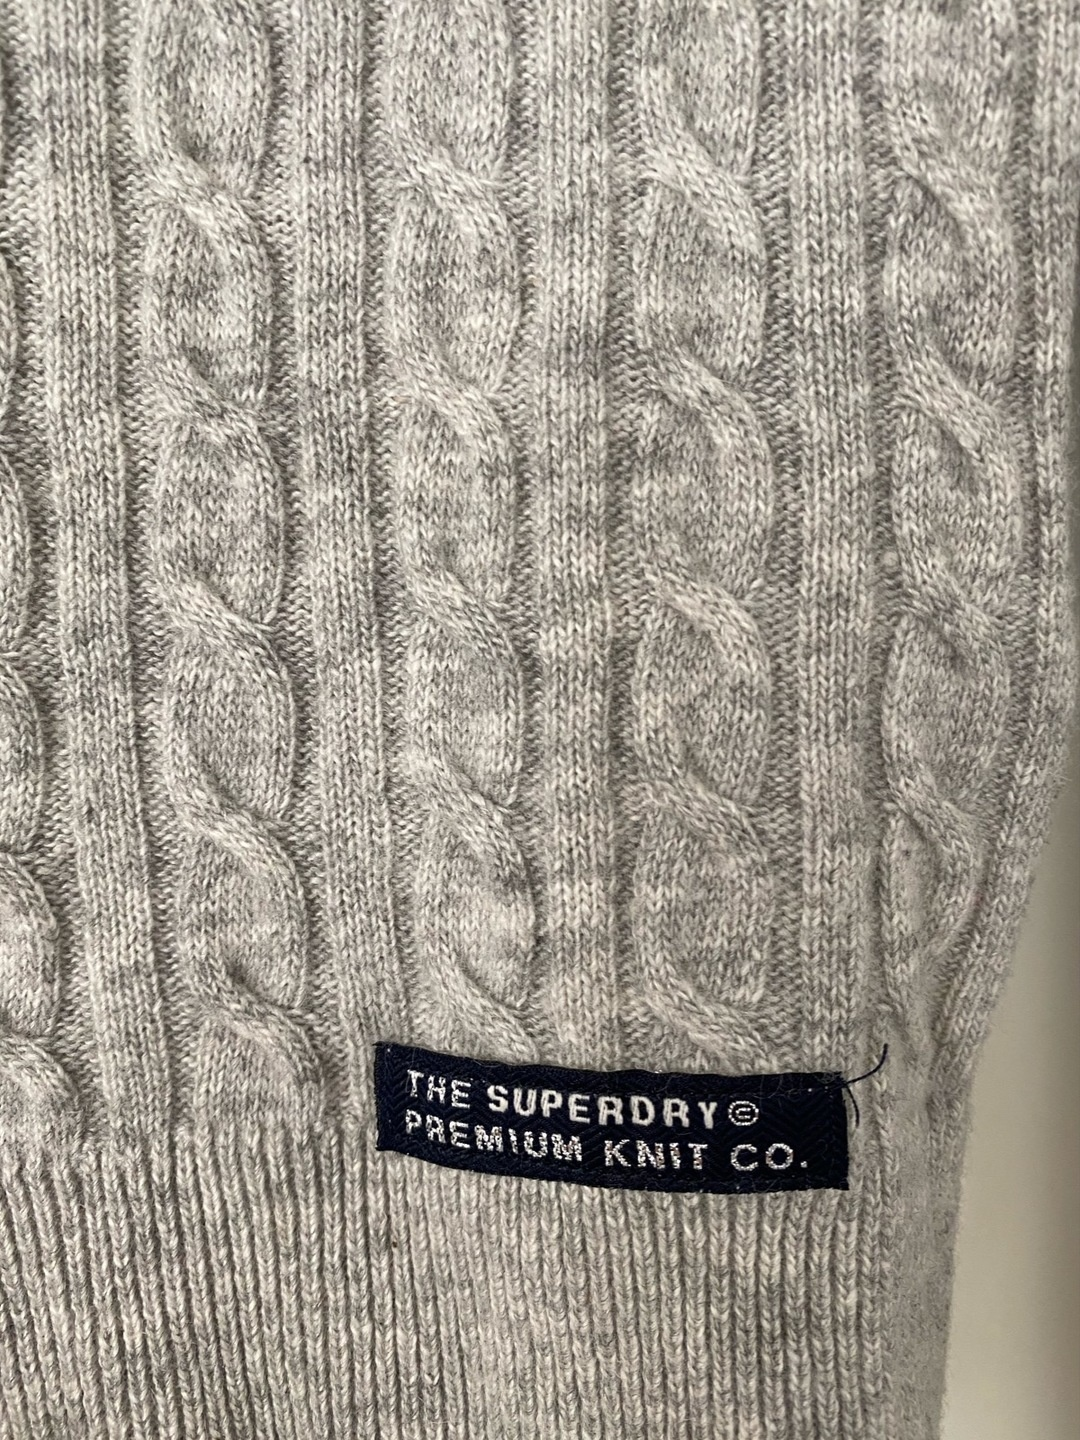 Women's jumpers & cardigans - SUPERDRY photo 3